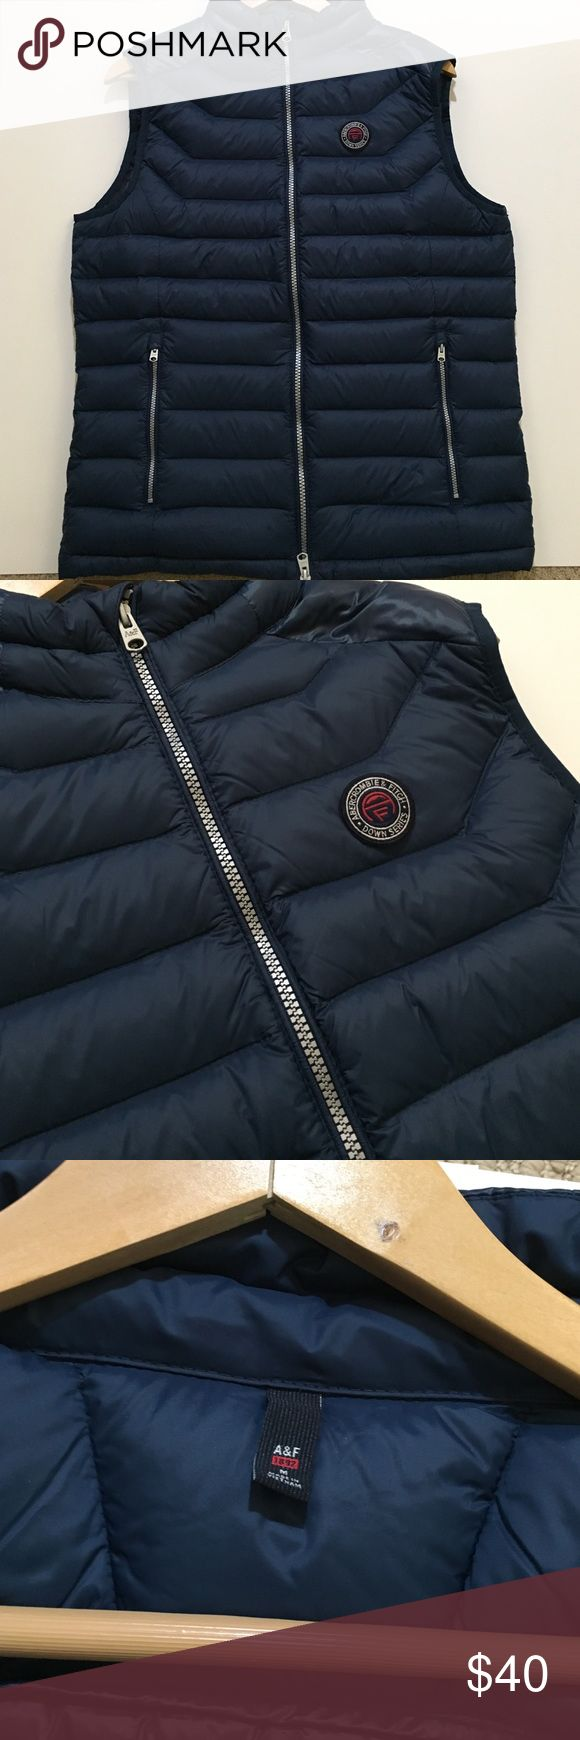 SALE! BNWOT Navy Abercrombie & Fitch Puffer Vest This navy, puffer vest from Abercrombie & Fitch is in perfect condition! It features two pockets on the front and one on the inside. Premium, super warm 700-fill-power Down offers ideal warmth to weight. Water resistant shell and highly compressible, this vest is perfect for Winter travel! Abercrombie & Fitch Jackets & Coats Vests